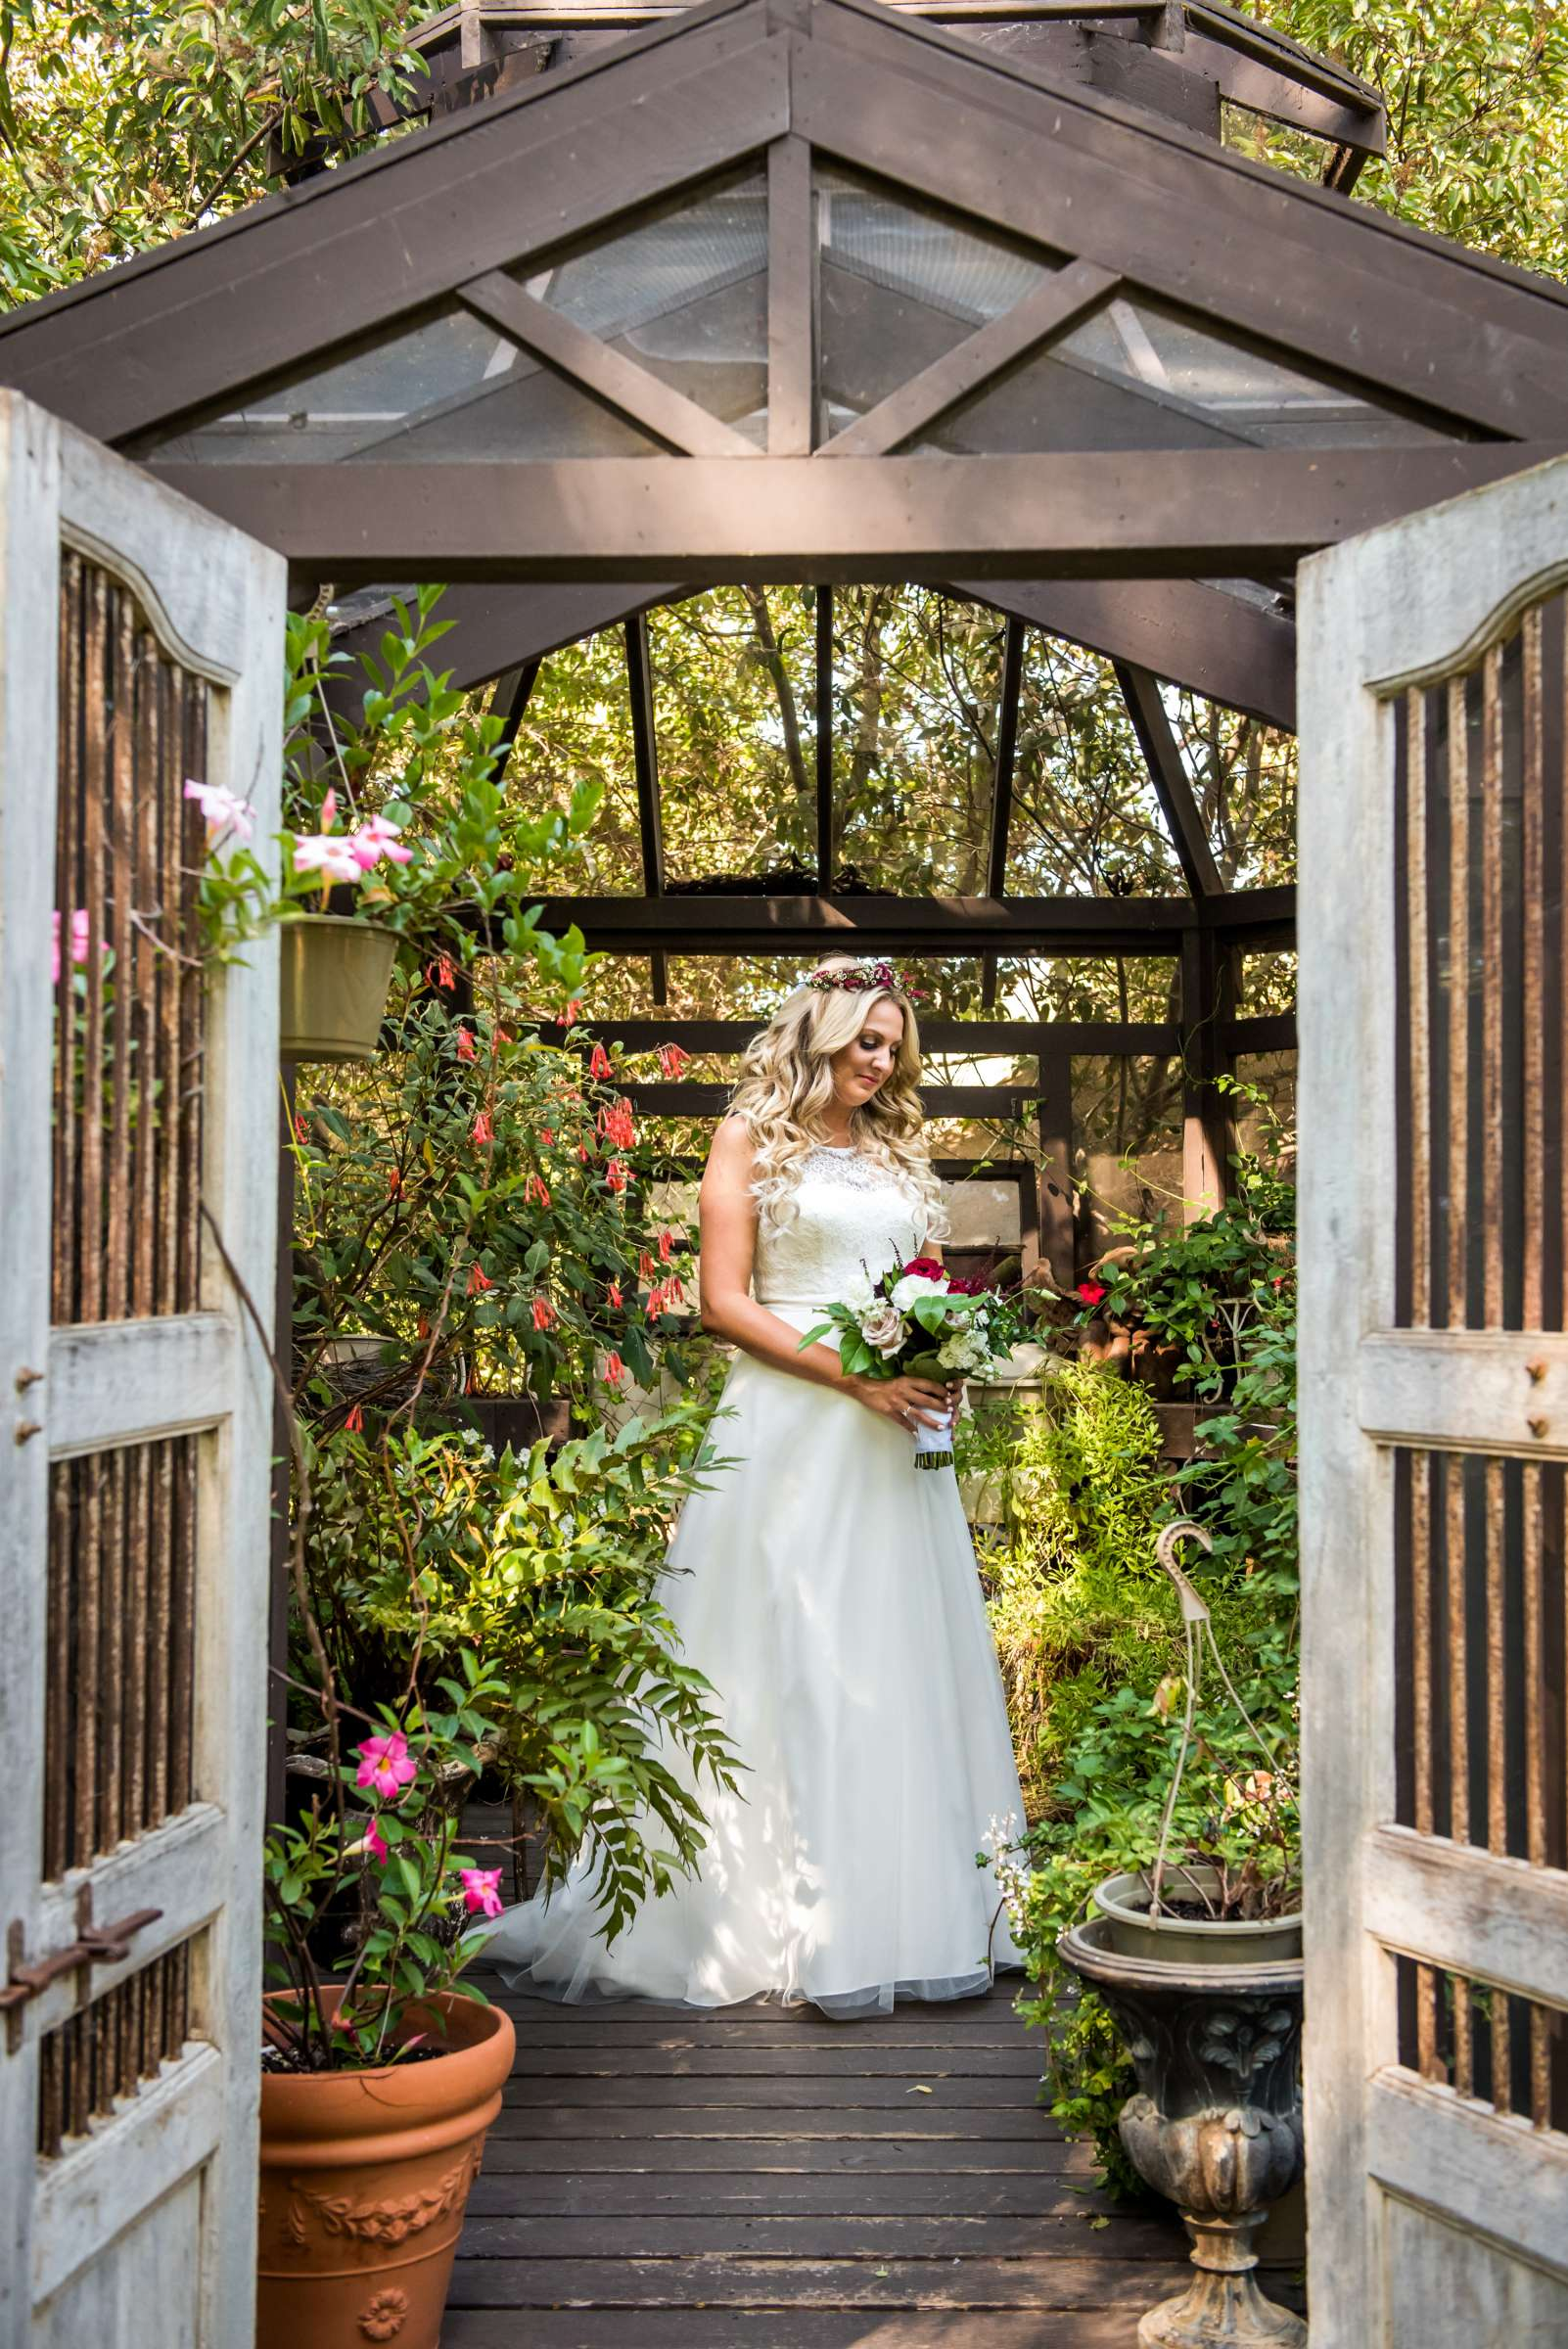 Twin Oaks House & Gardens Wedding Estate Wedding, Brittany and Sean Wedding Photo #19 by True Photography